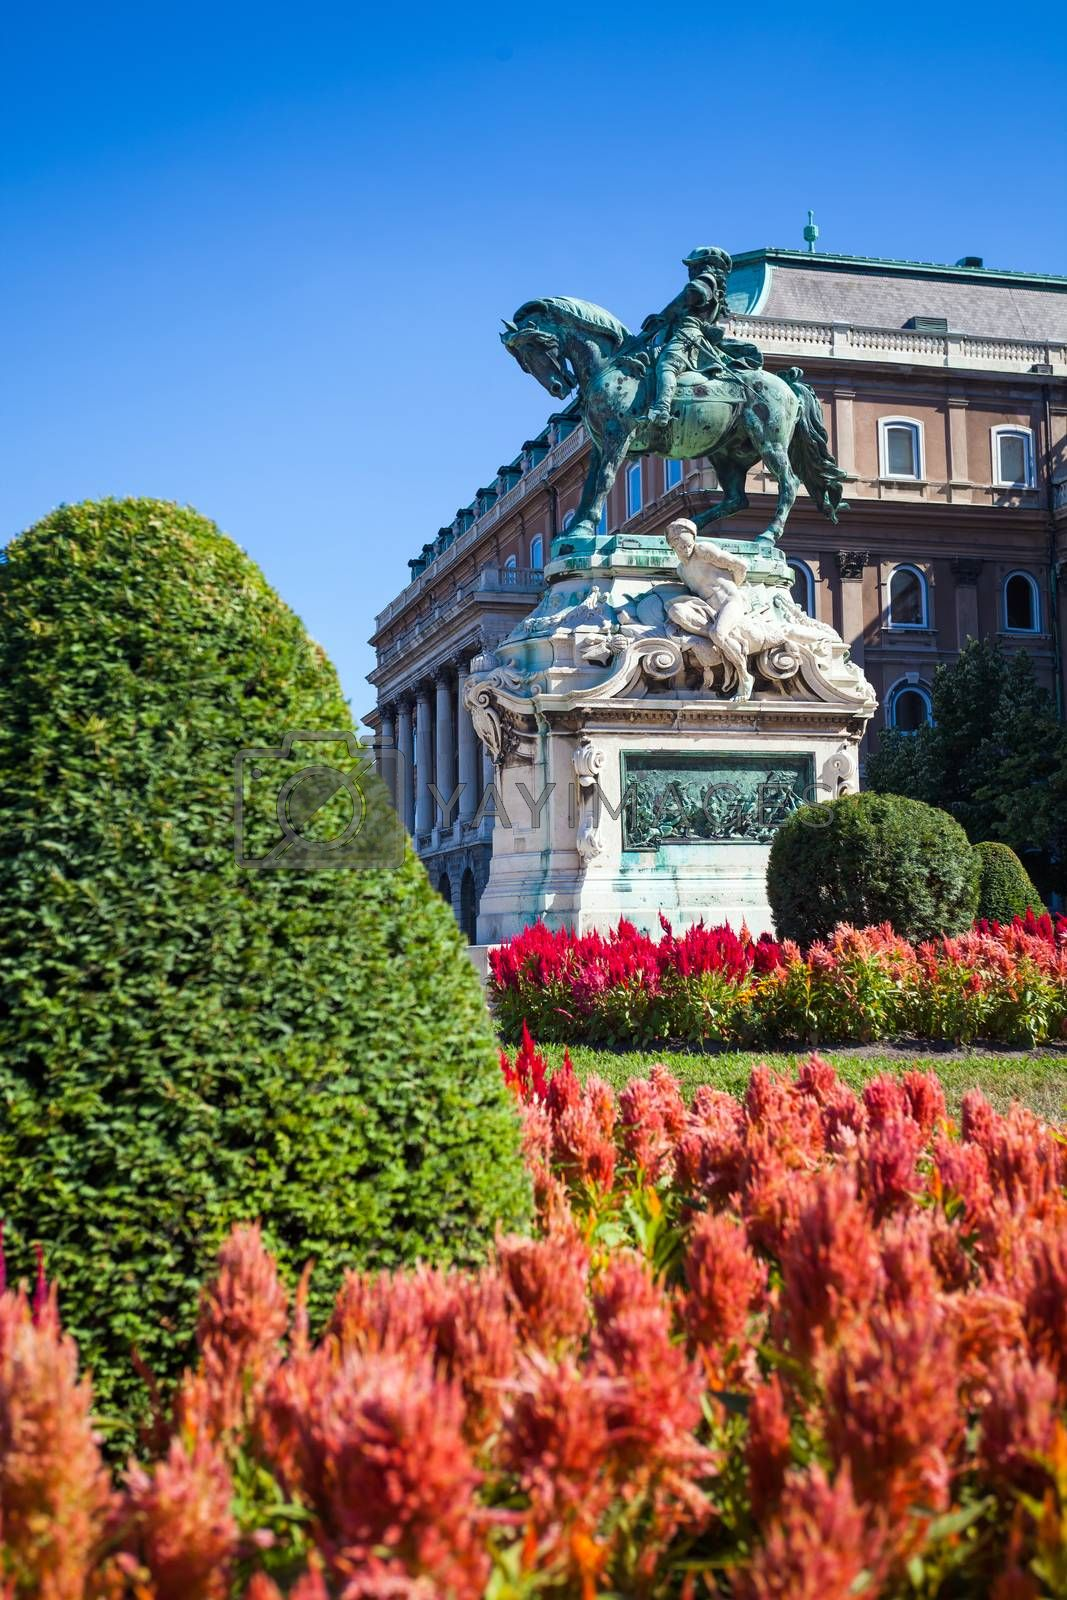 Royalty free image of The statue of Prince Eugene of Savoy in front of Buda Castle by PixAchi